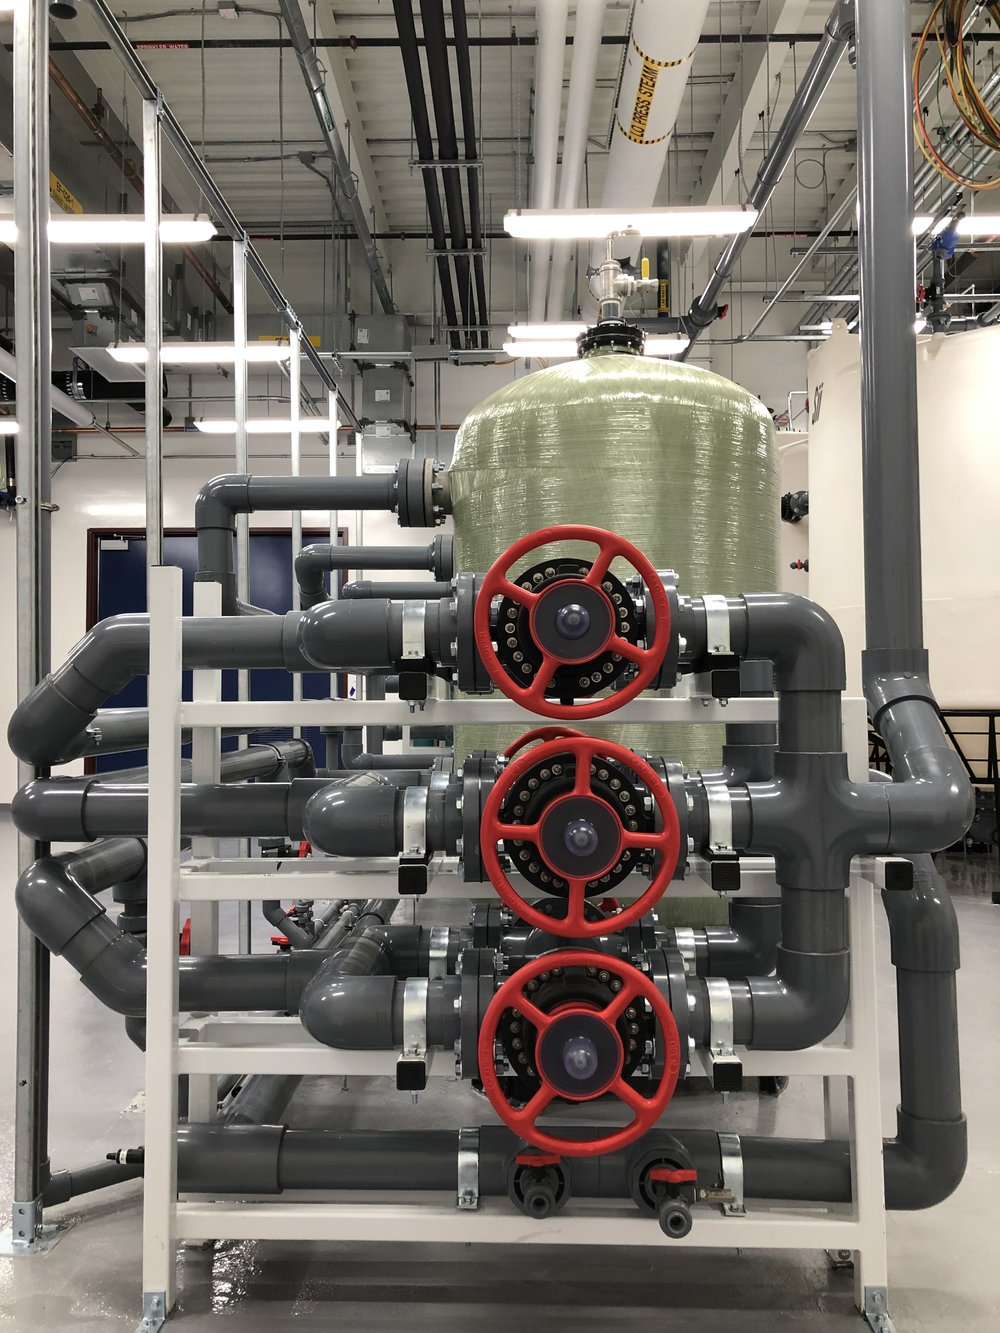 Built by experts, serviced by experts - Designed to meet zero downtime requirements, each system's maintenance program ensures that water quality goals are exceeded for decades to comeServiced by the largest independent high purity water service team in New England, we'll be there when you need us